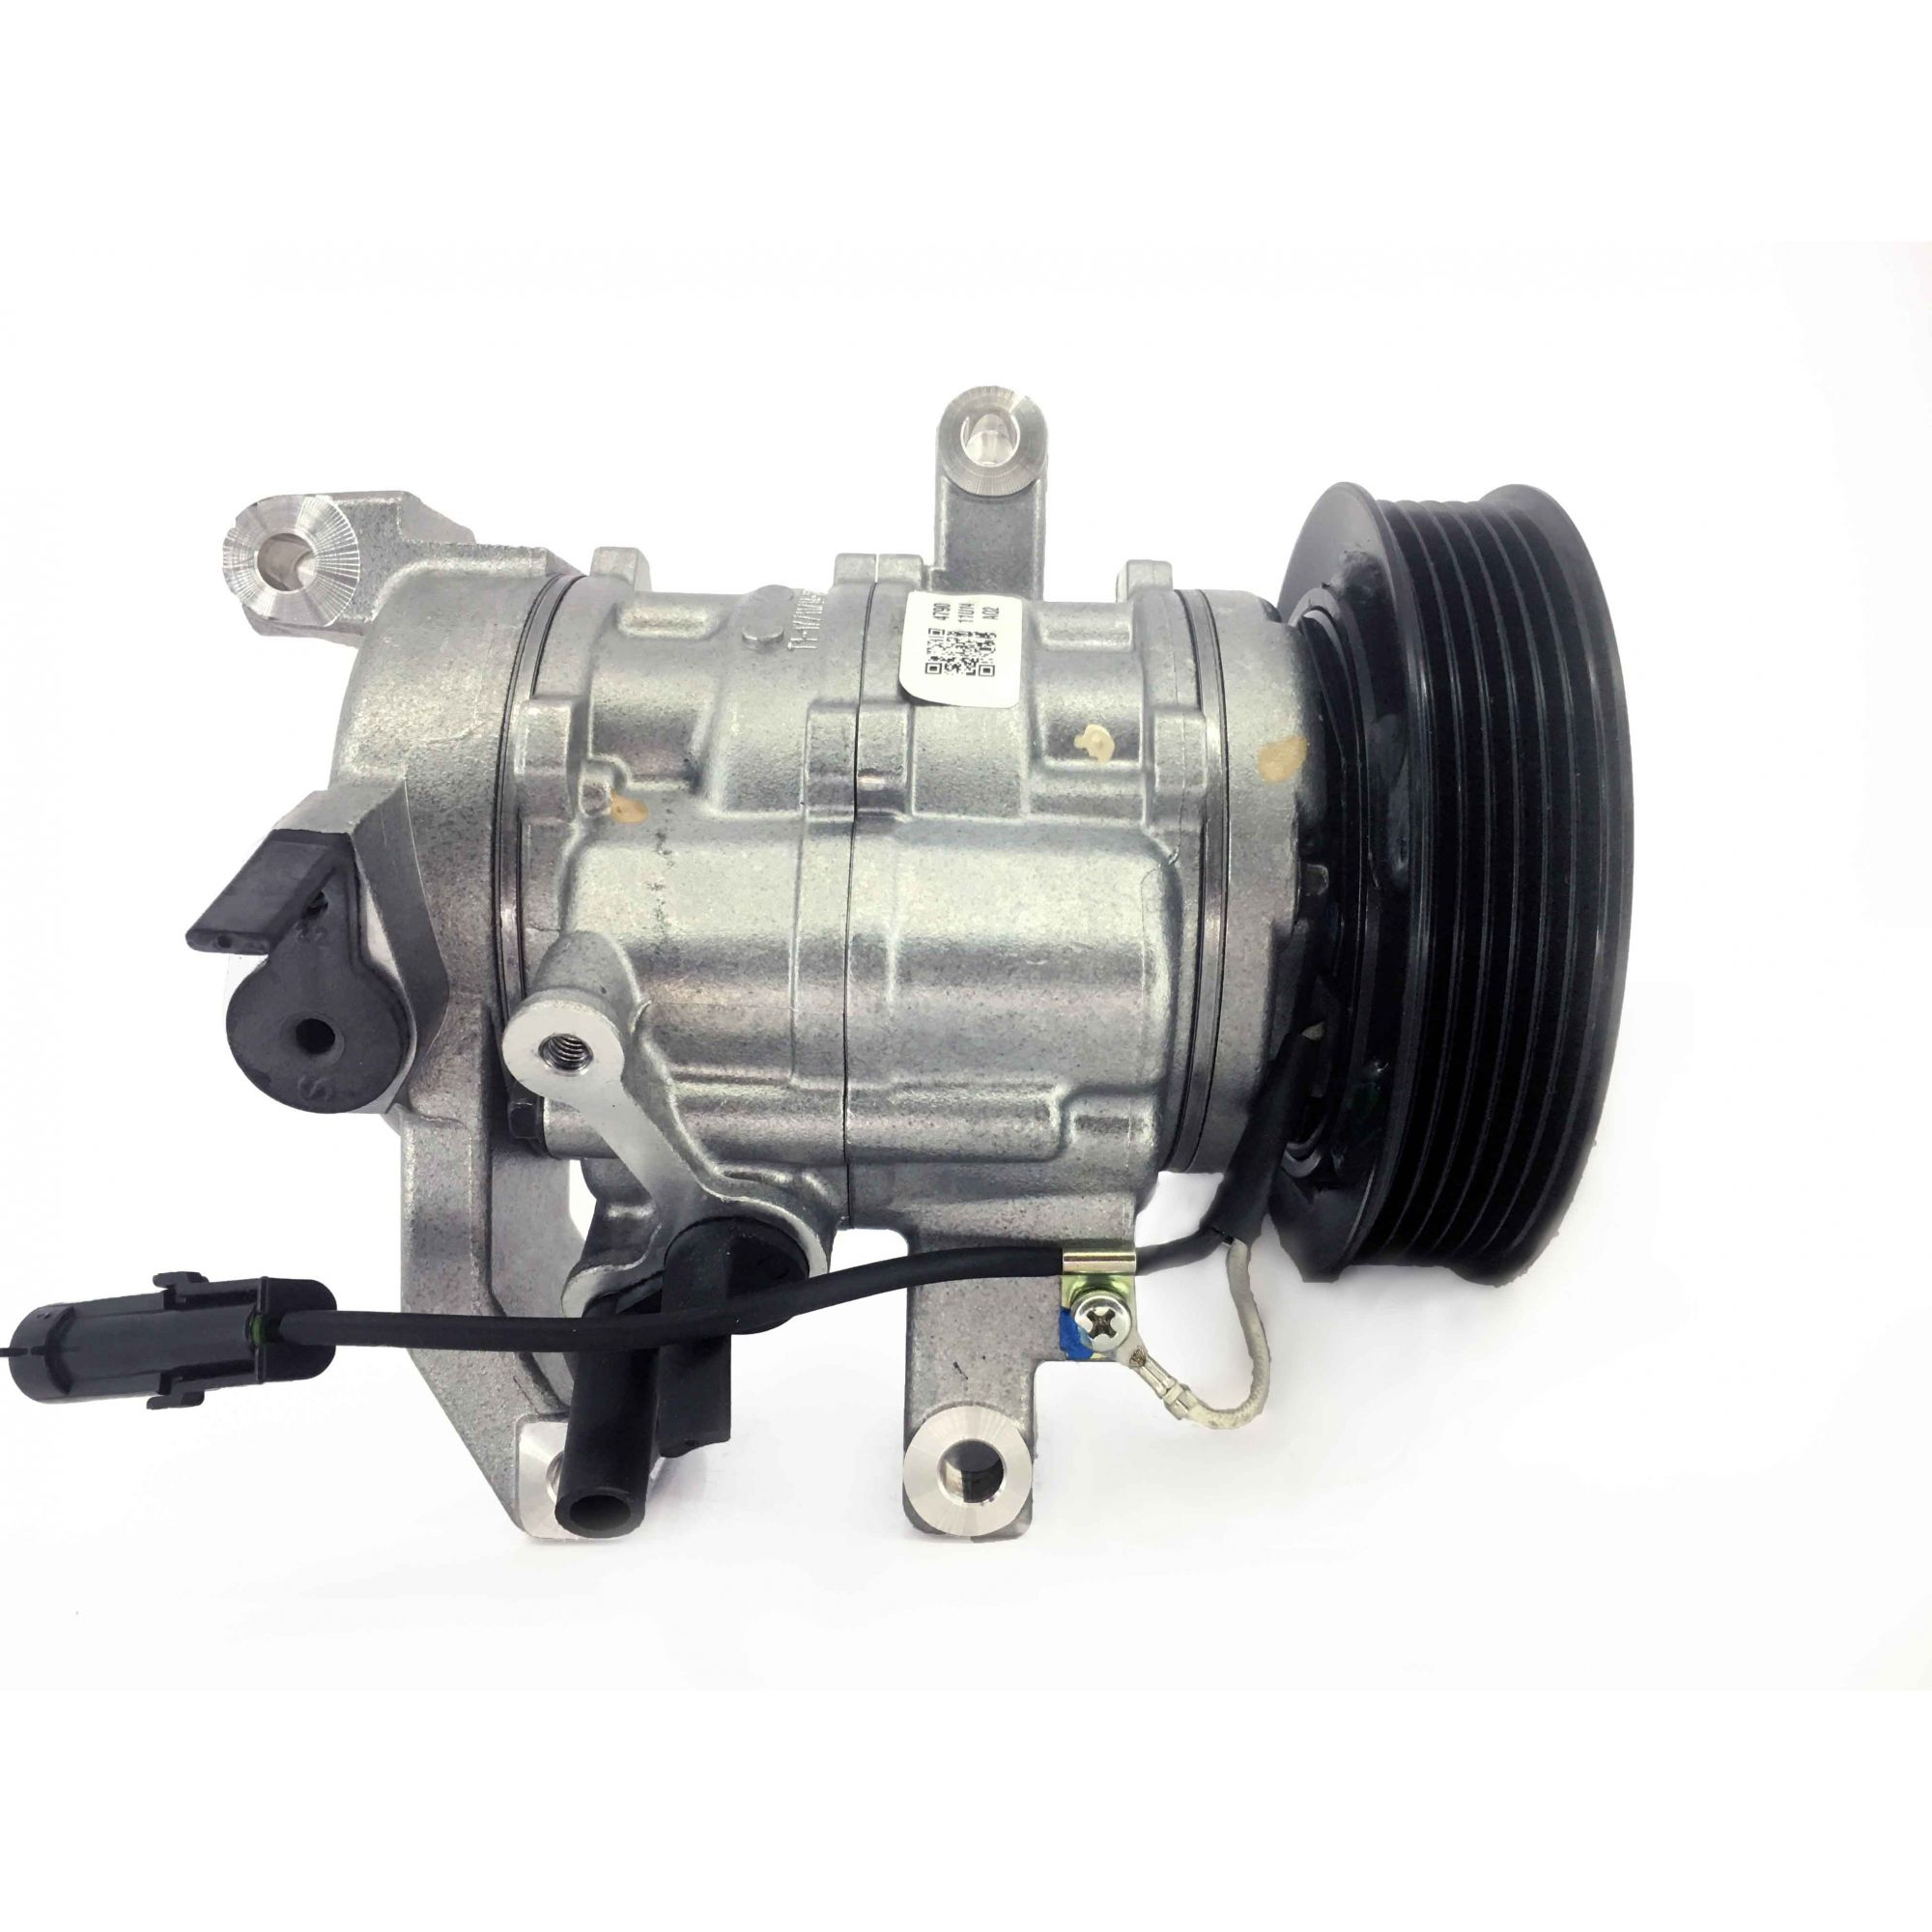 Compressor Civic - Original DENSO